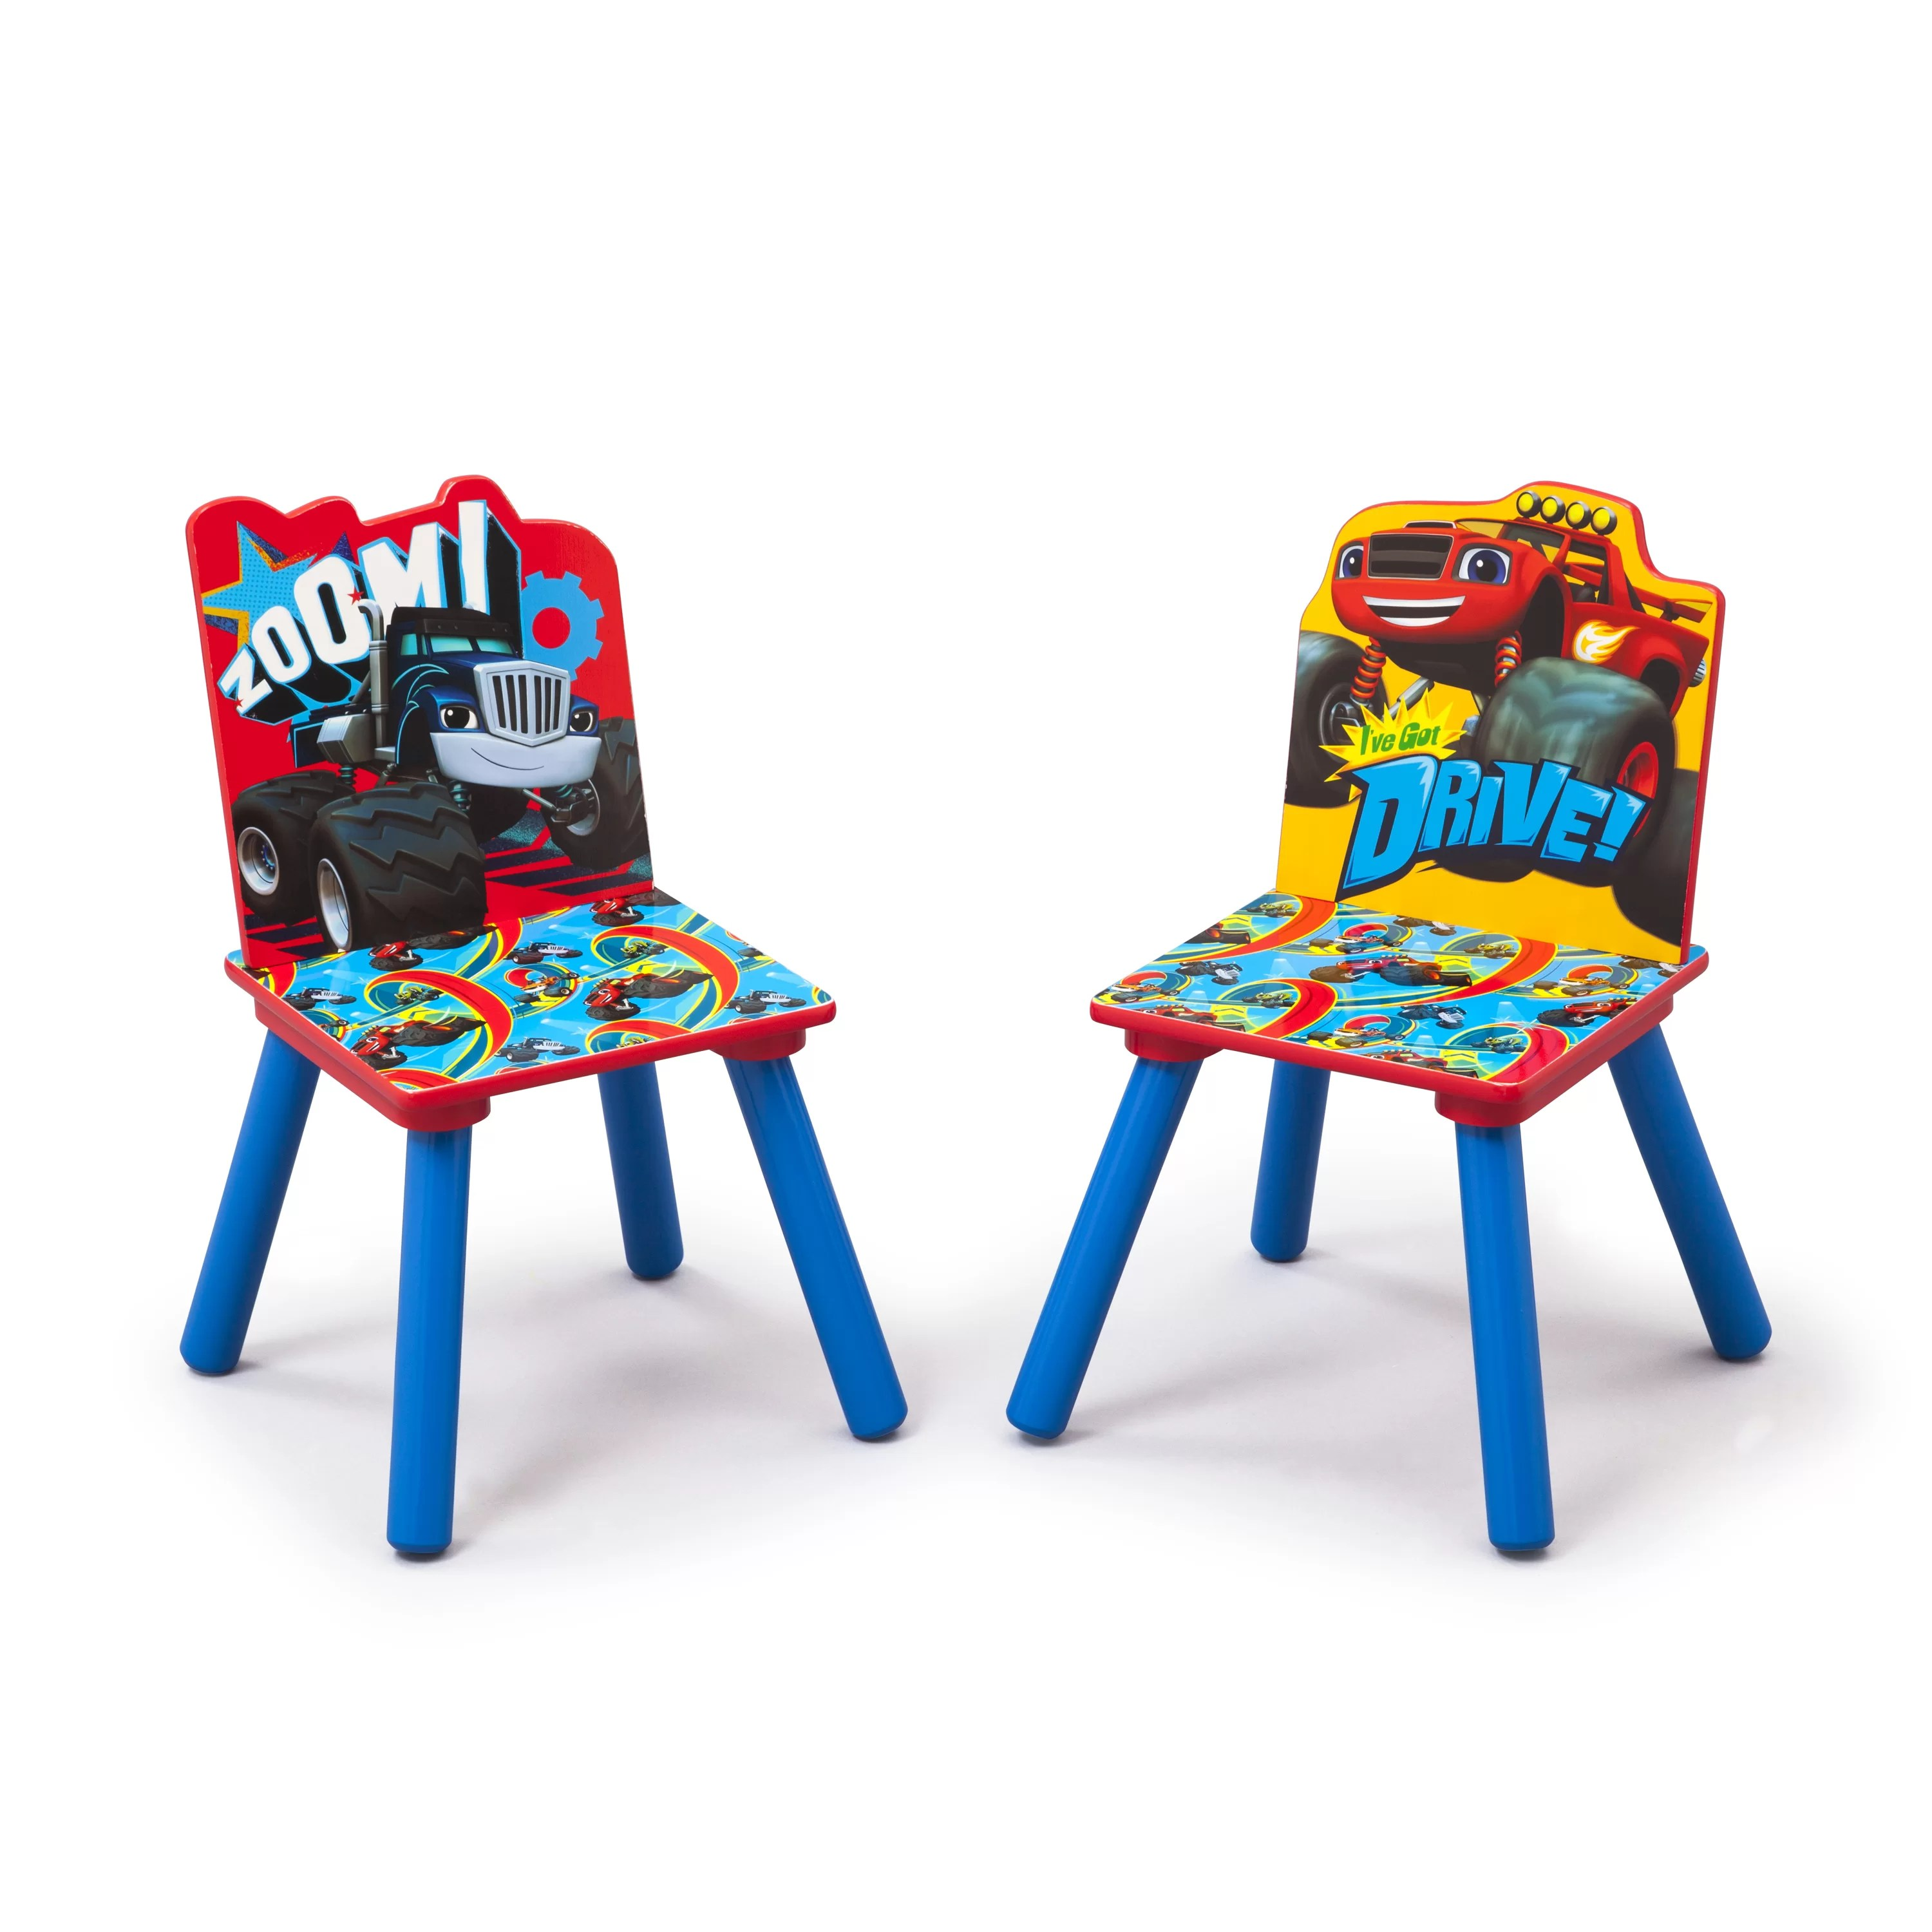 safety 1st 5 piece childrens table and chair set lift recliner accessories delta children nick jr kids 3 blaze the monster